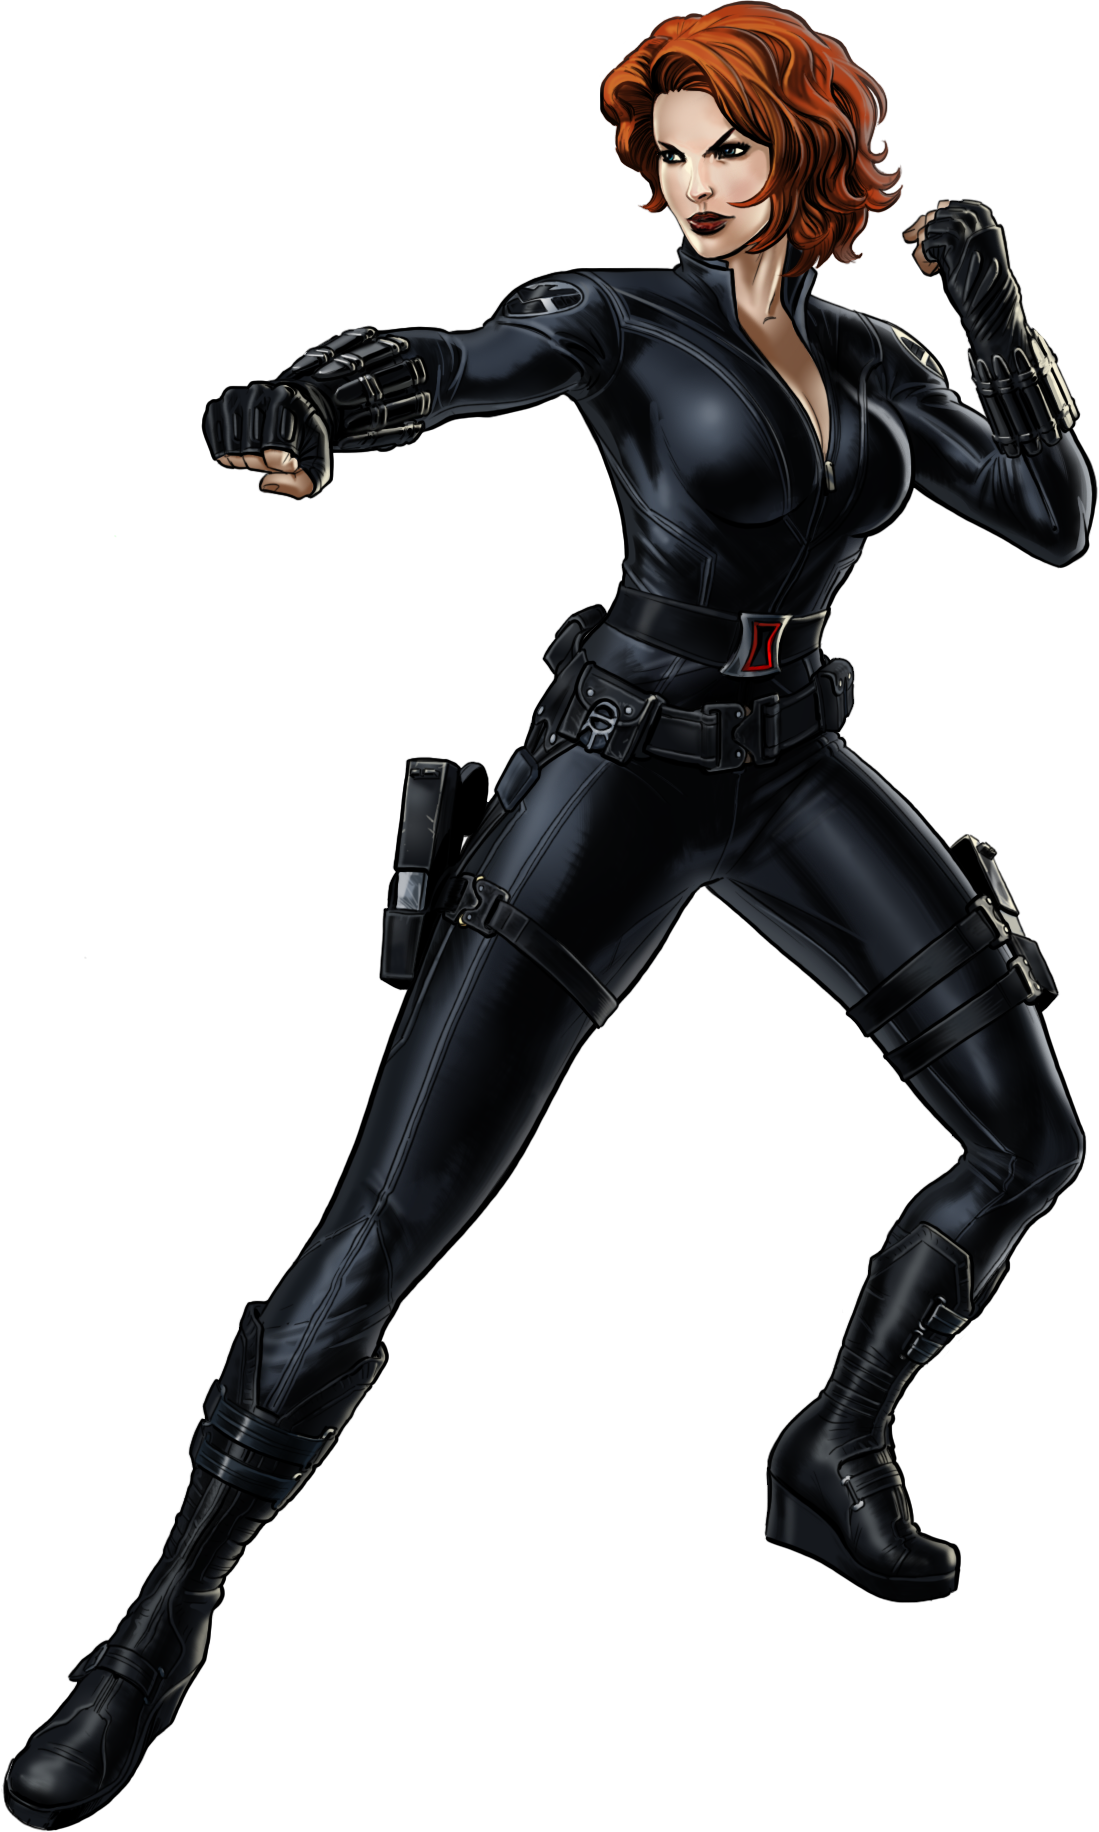 Comic book clipart graphic royalty free library Black Widow Clipart Comic Book Character #2503494 graphic royalty free library